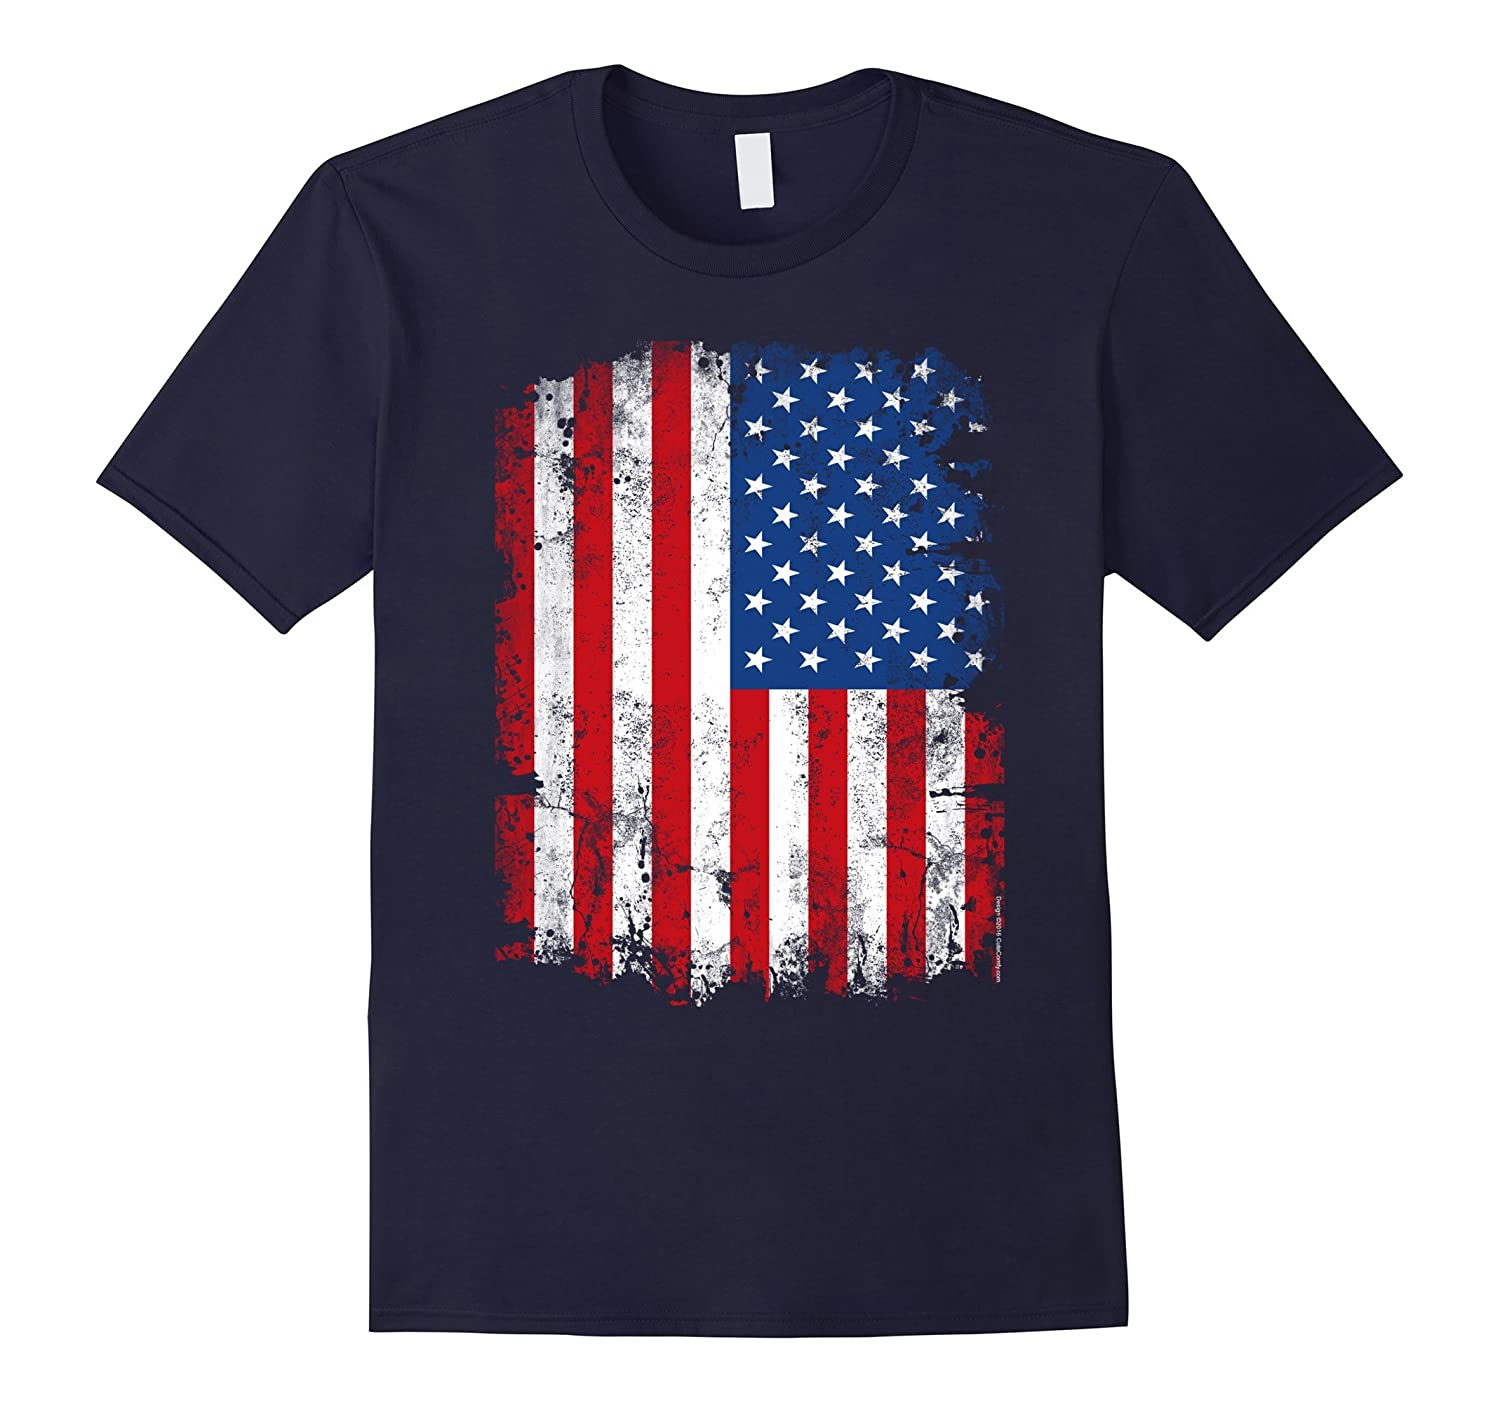 Vintage Patriotic American Flag 4th of July Family T-Shirt-PL